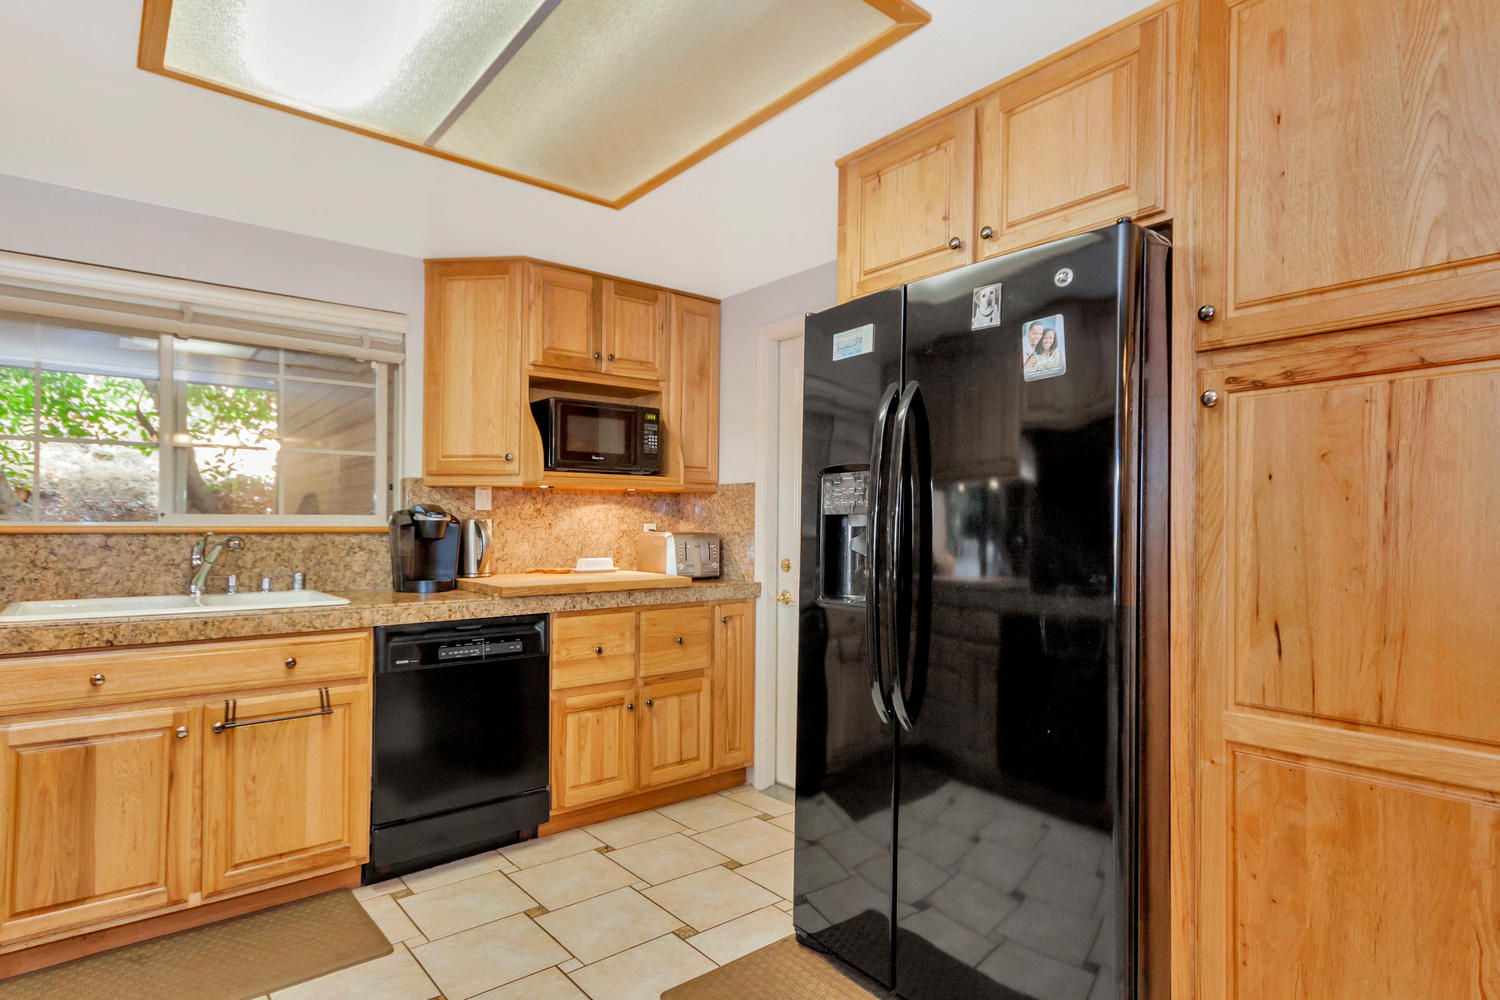 1302 W 13th St Benicia CA-large-011-3-Kitchen 2-1500x1000-72dpi.jpg